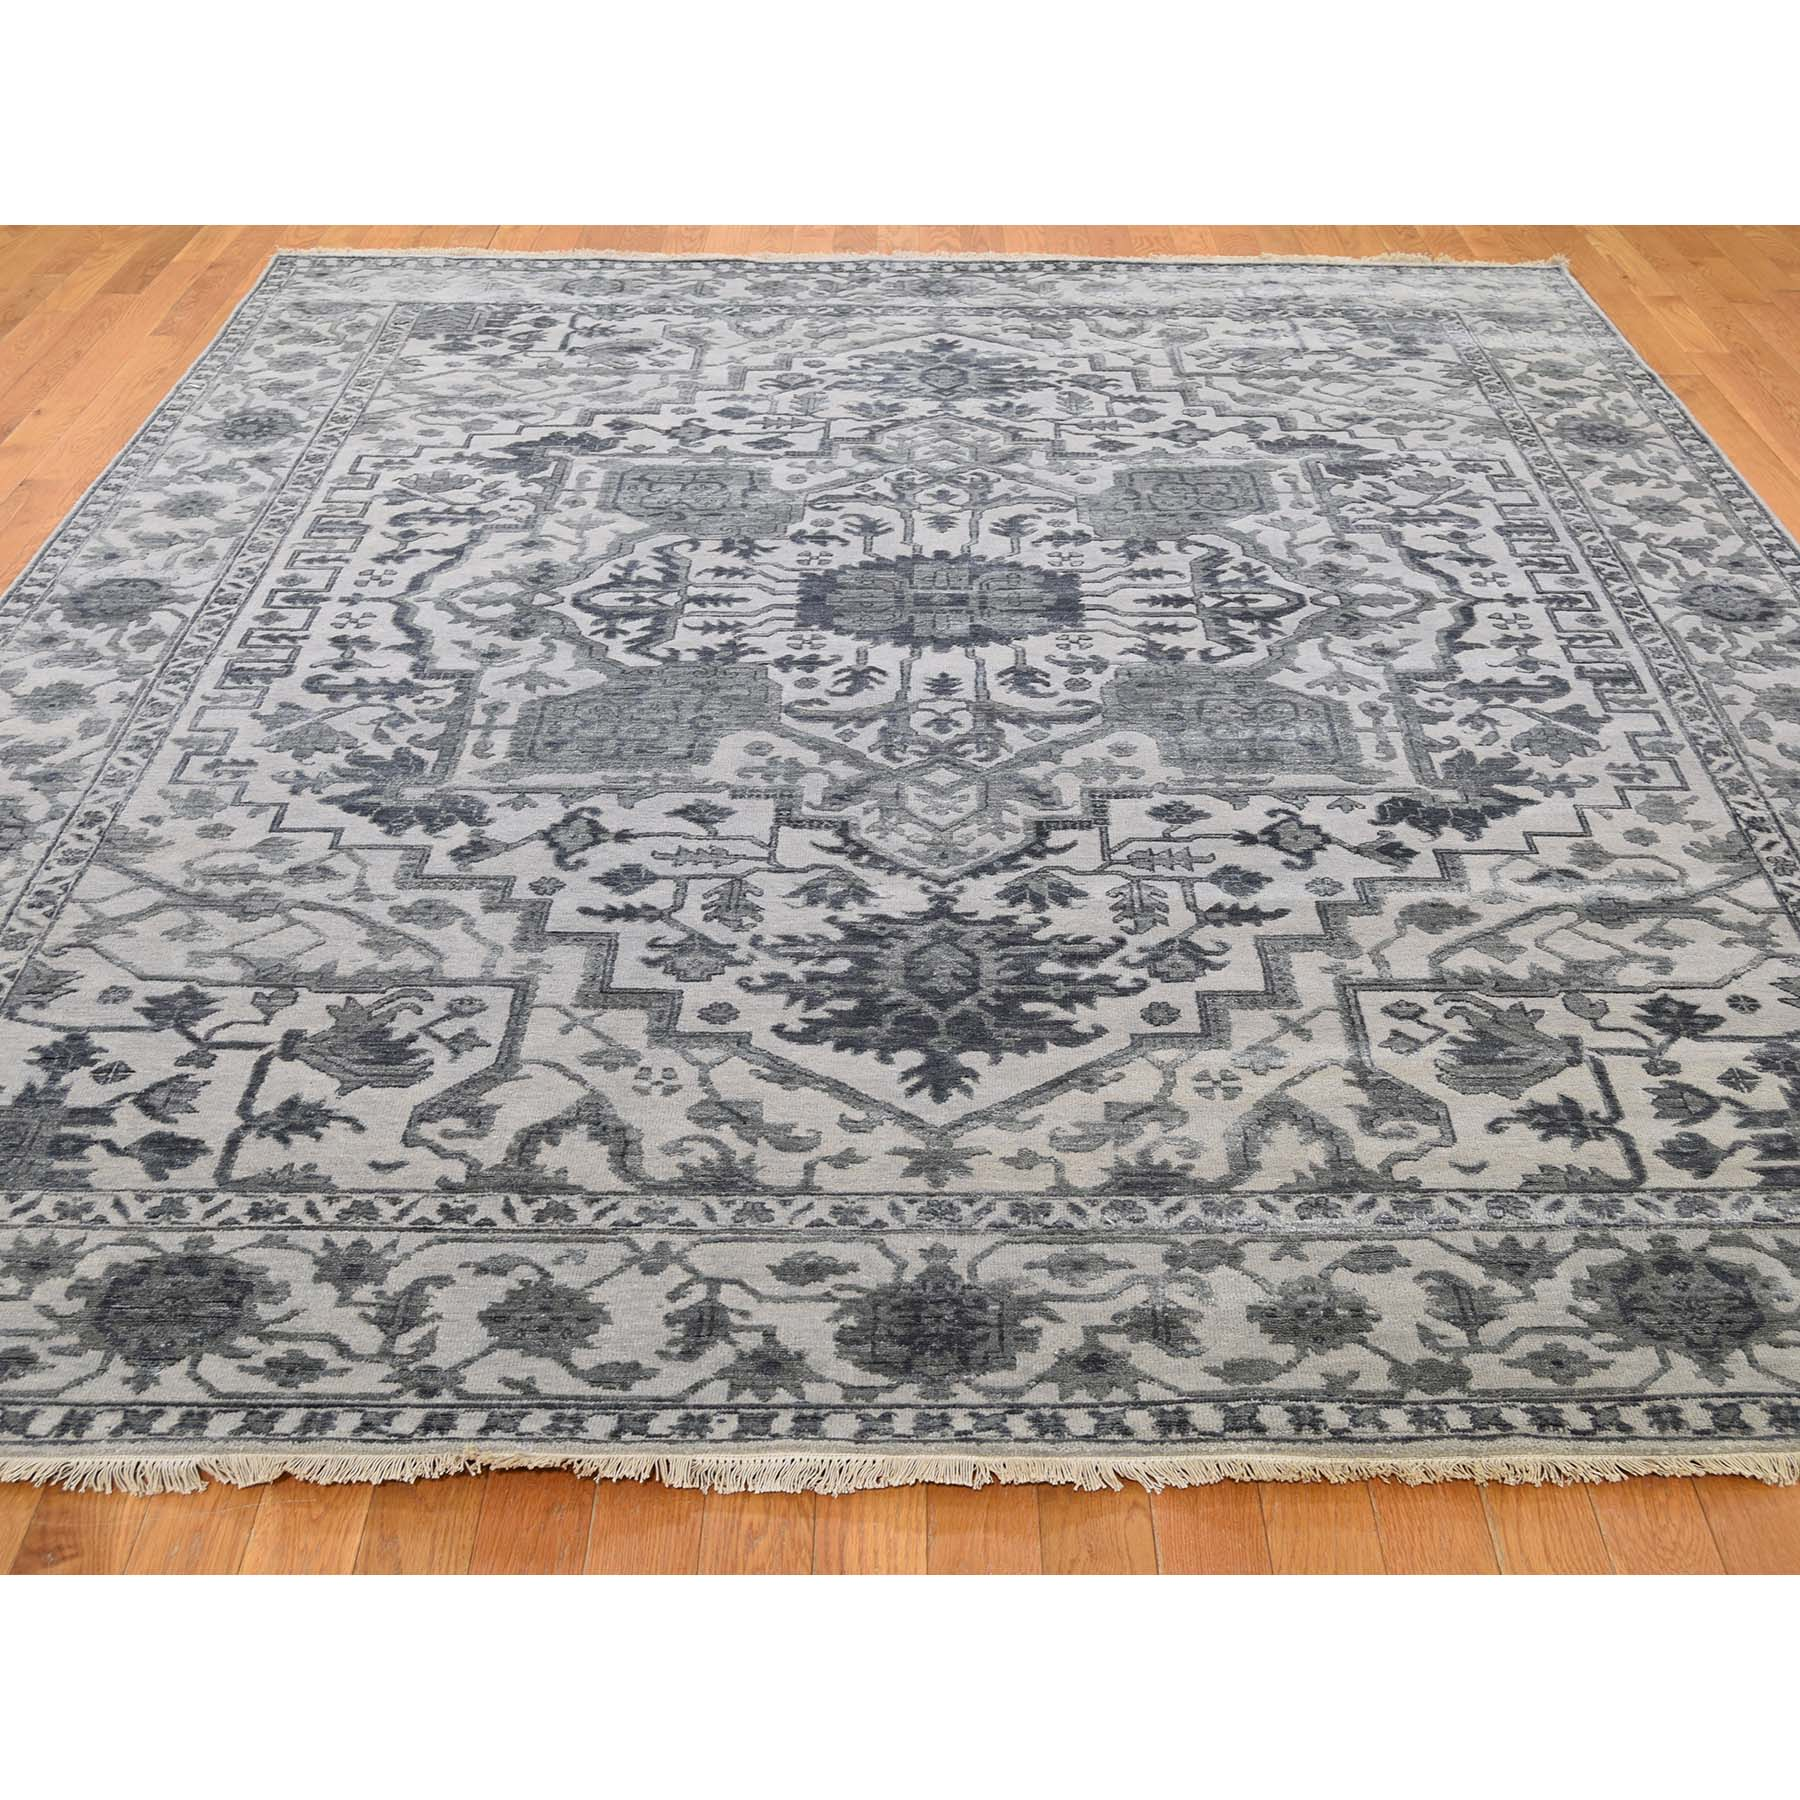 8-1 x10-1  Silver Heriz Design Wool And Silk Hi-lo Pile Hand-Knotted Oriental Rug